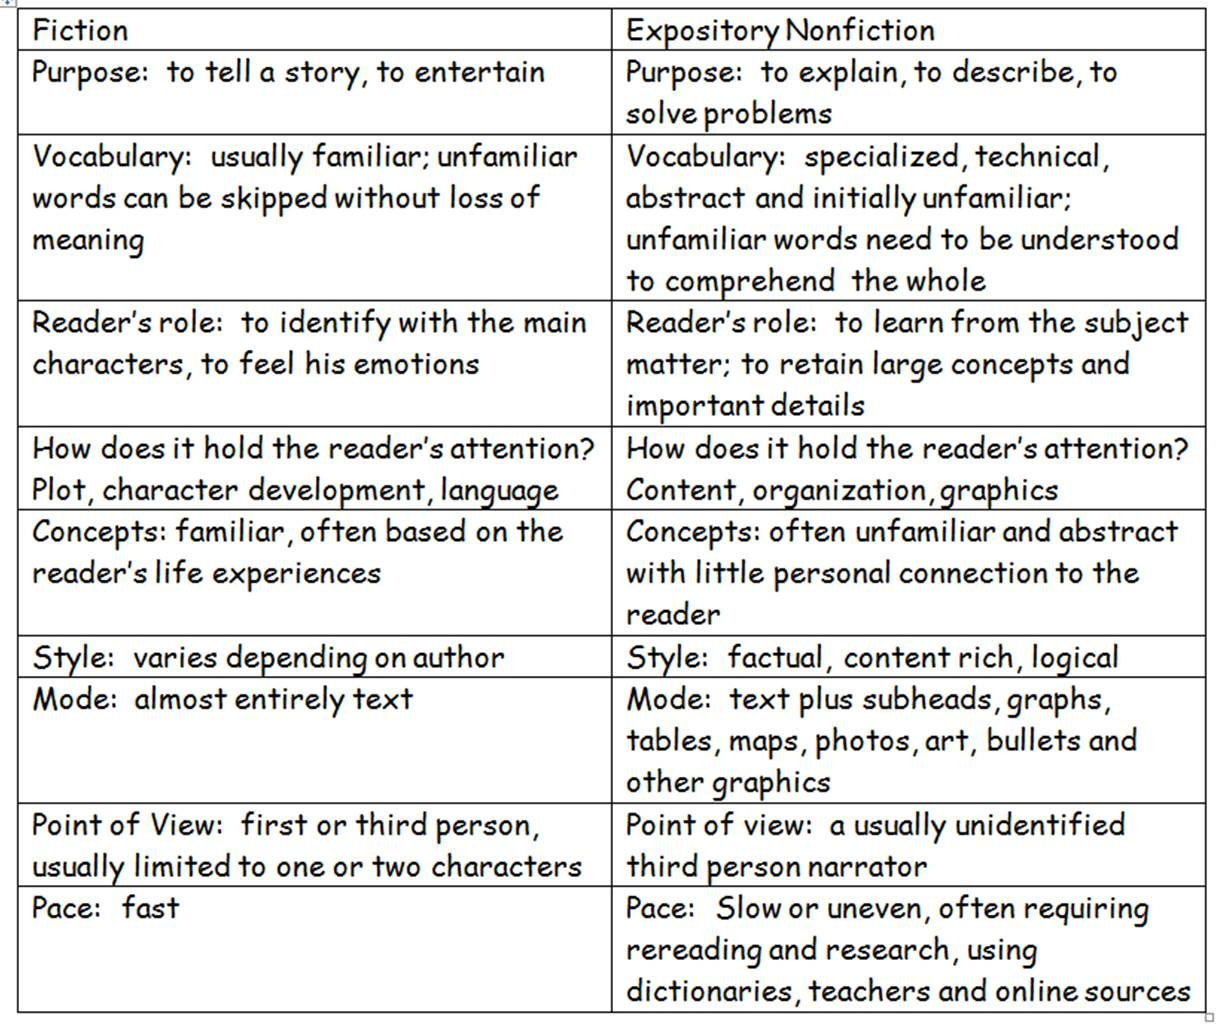 essay about fiction and nonfiction